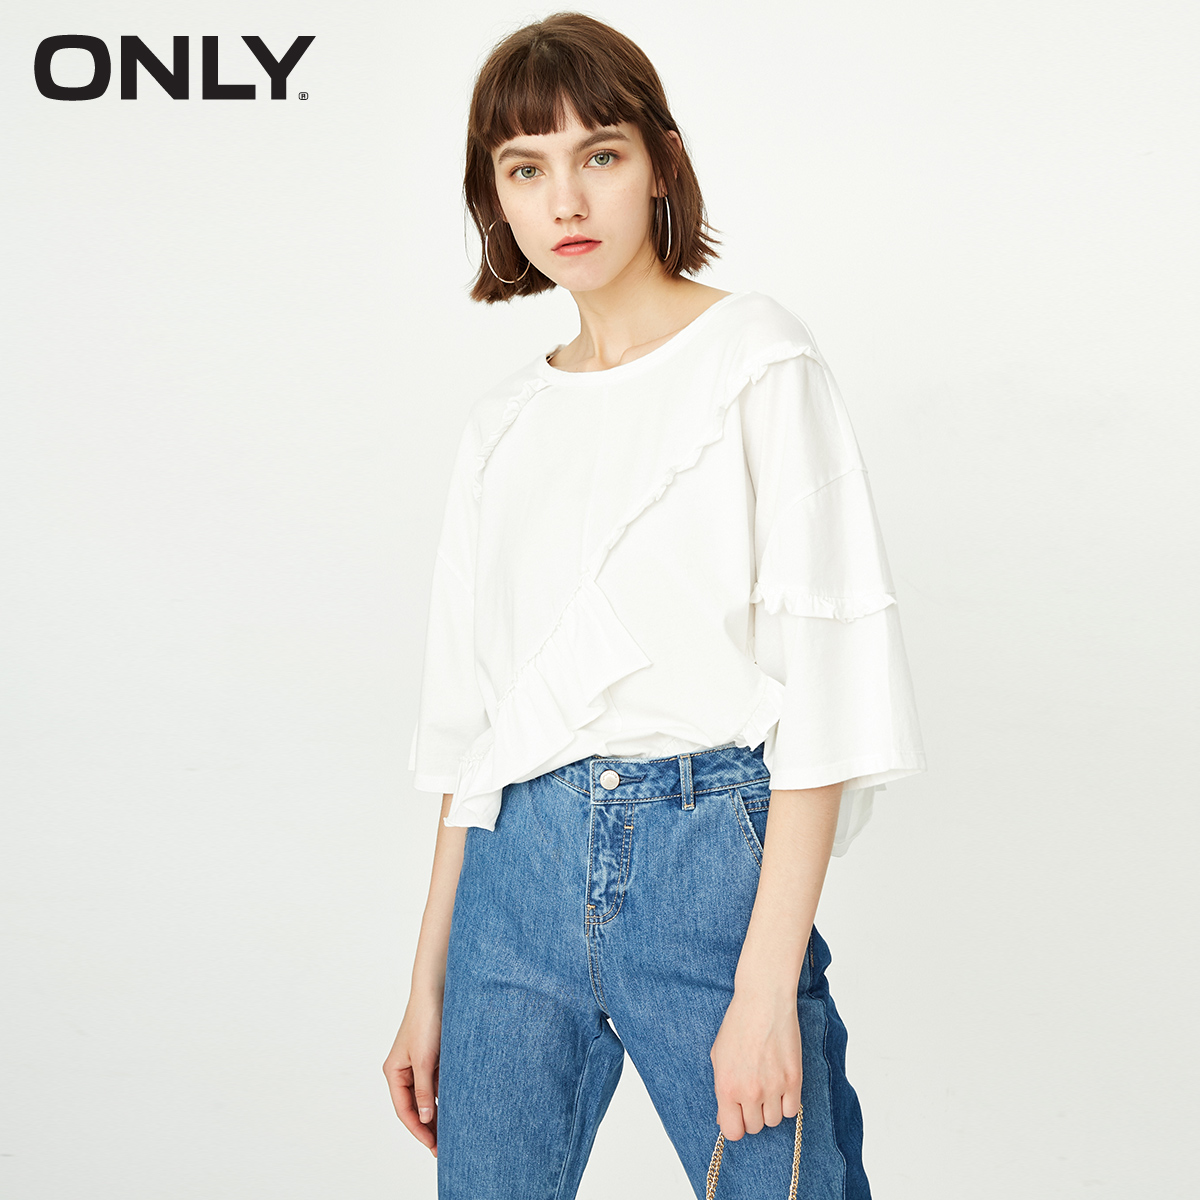 ONLY Spring And Summer Women's Loose Fit 100% Cotton Frilled Elbow Sleeves T-shirt |118330501